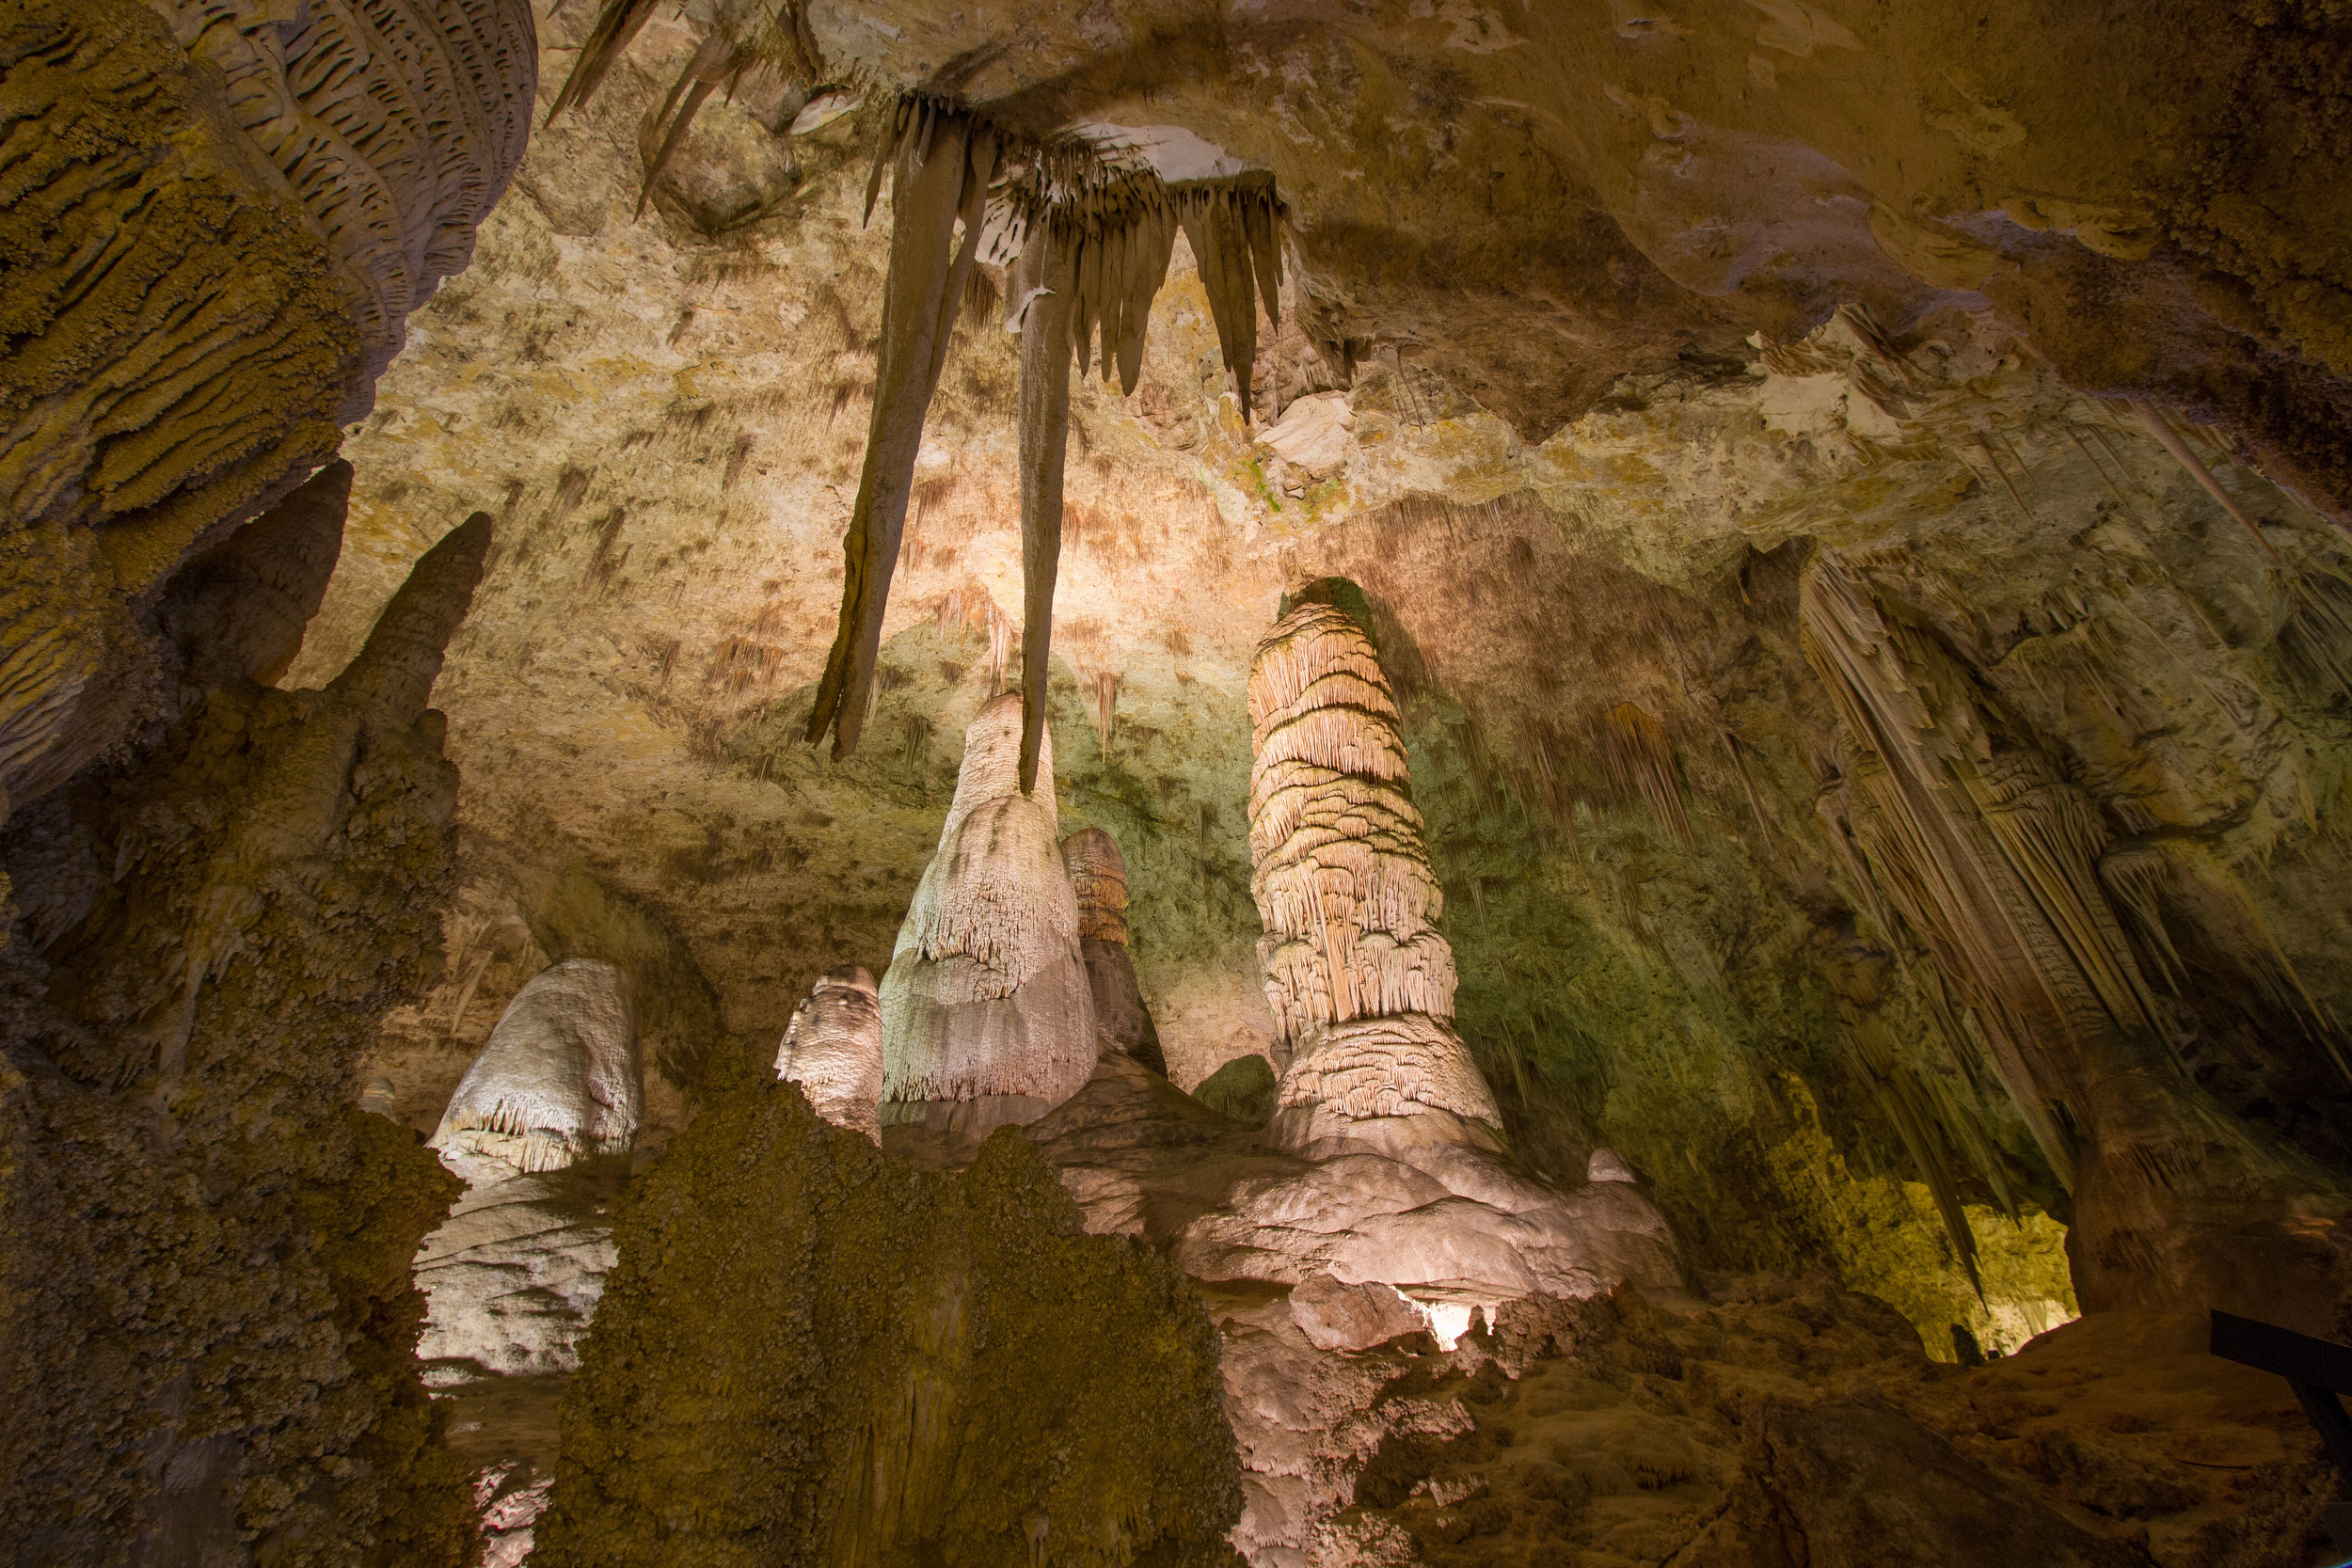 The Twin Domes in the Hall of Giants is one of the many underground marvels located in the Big Room at Carlsbad Caverns. The largest of the two domes stands 62 feet high.